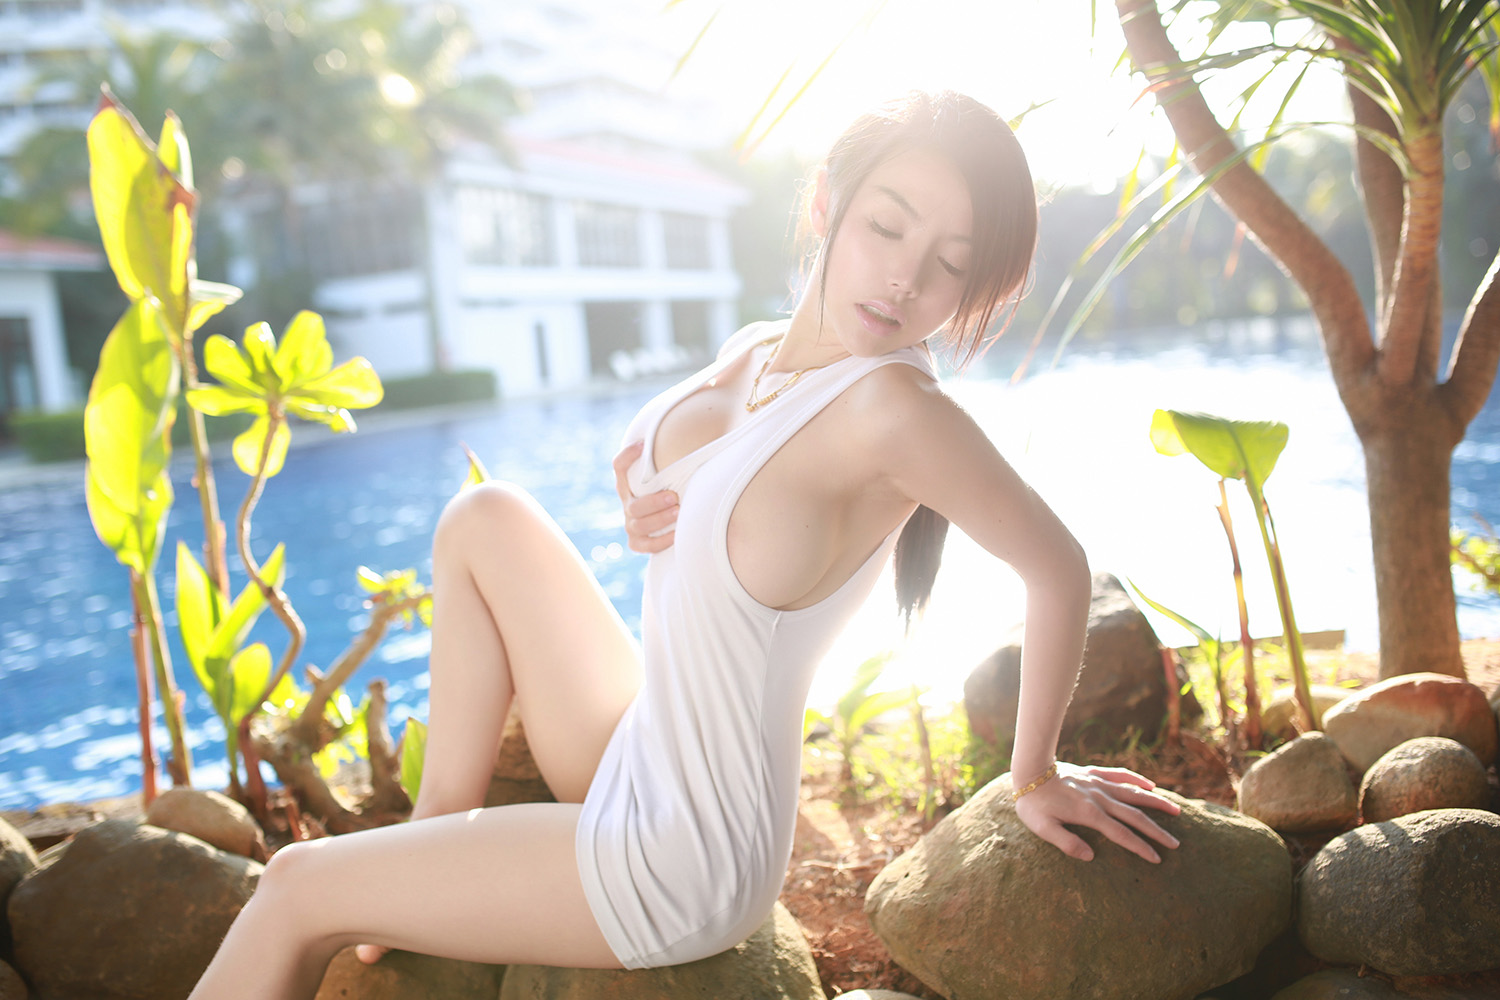 660A1616 - MYGIRL NO.27 Photo Nude Hot